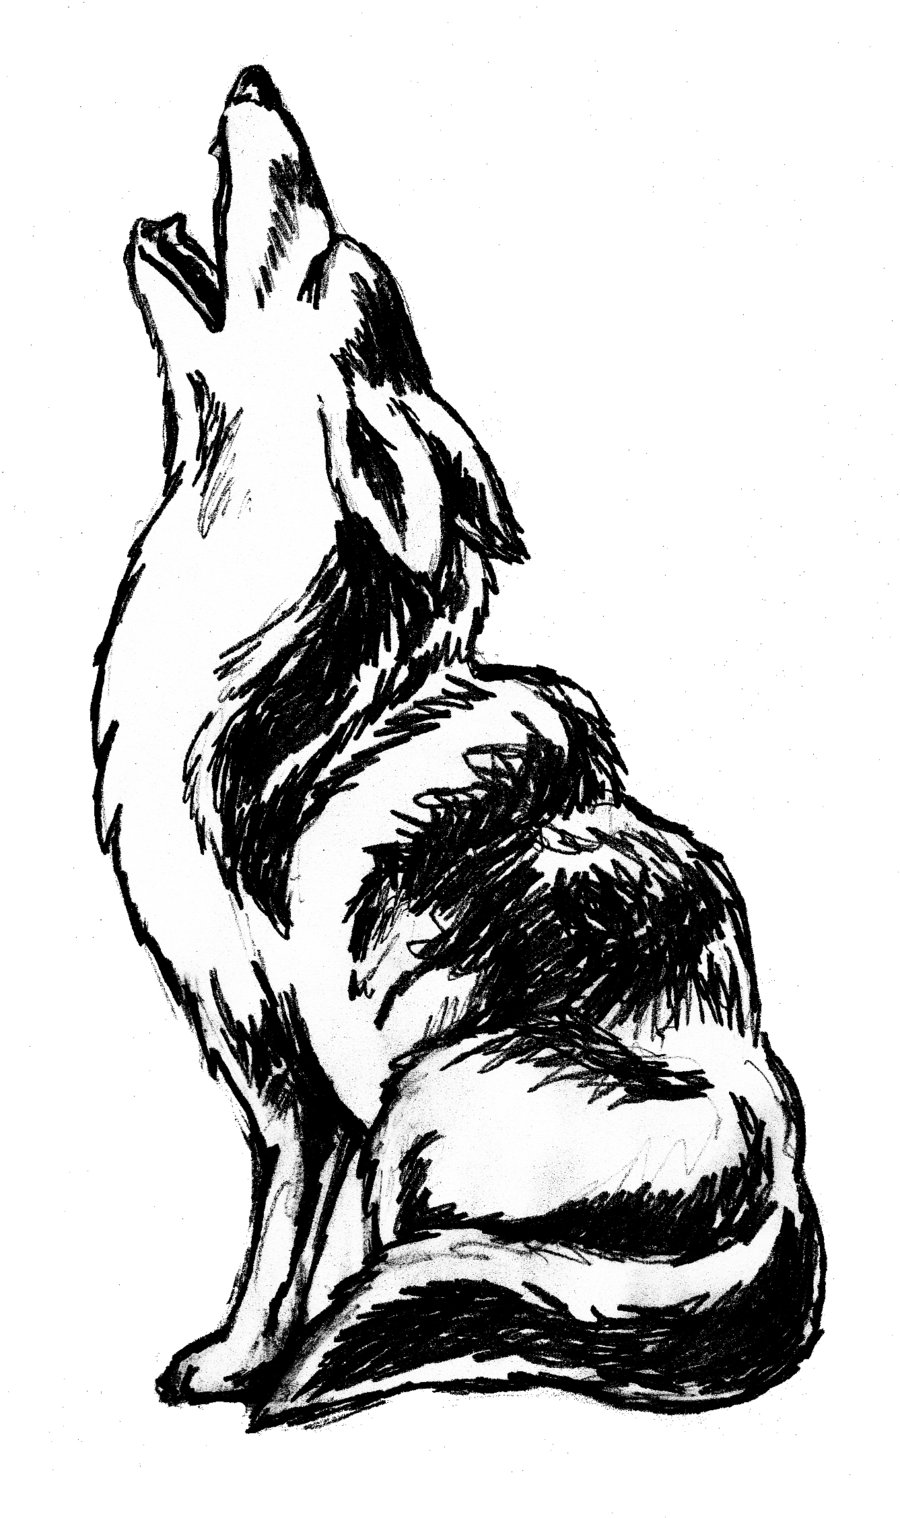 Howling clipart #1, Download drawings